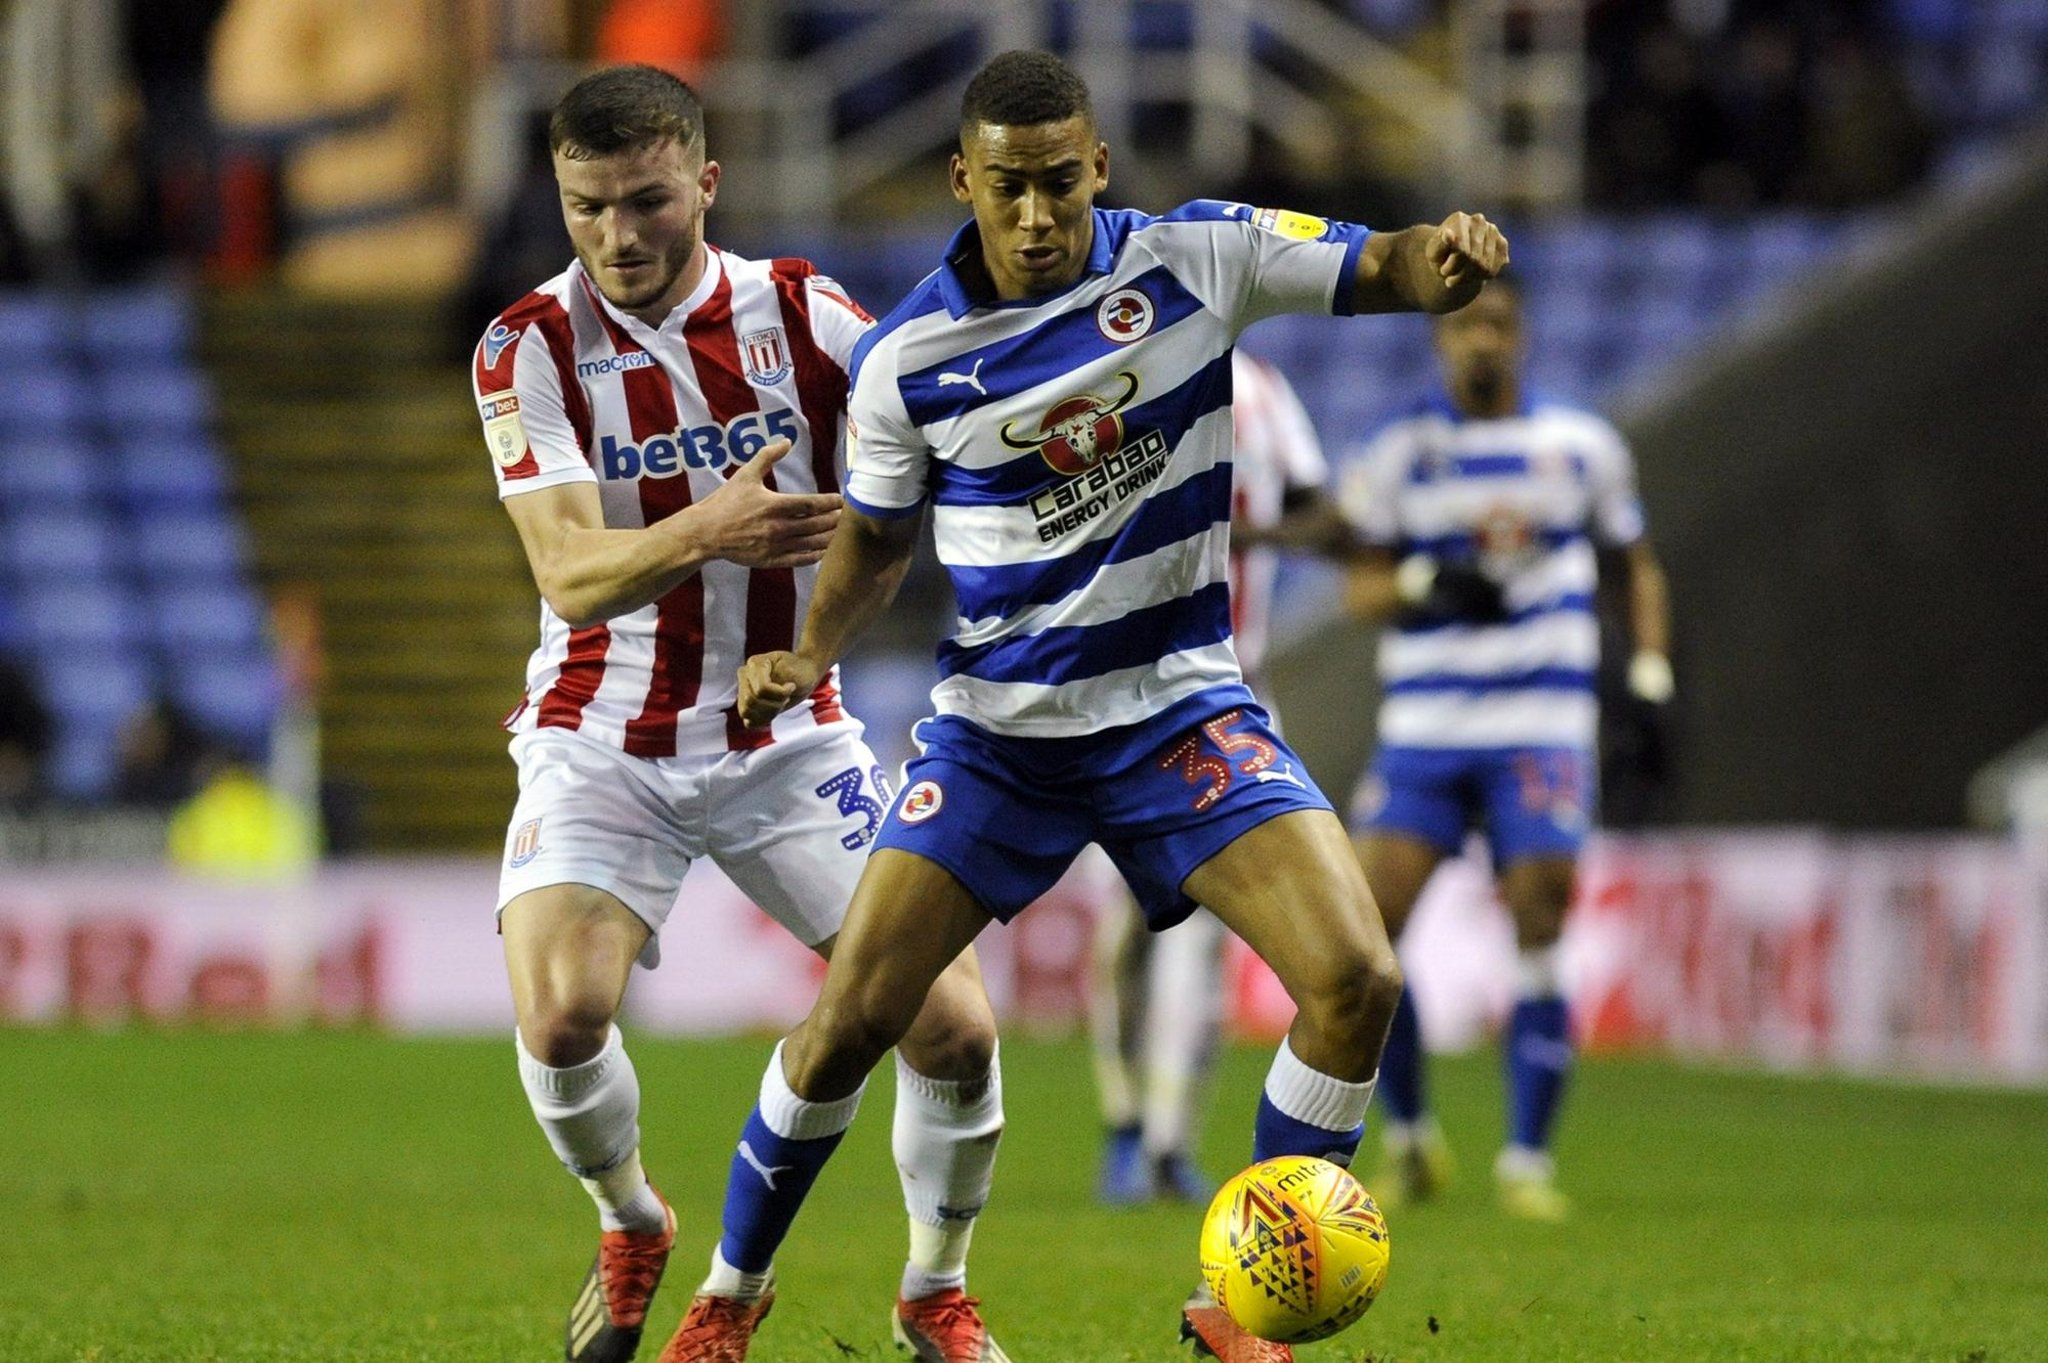 Former AFC Portchester midfielder's remarkable rise continues as he brings up Reading milestone